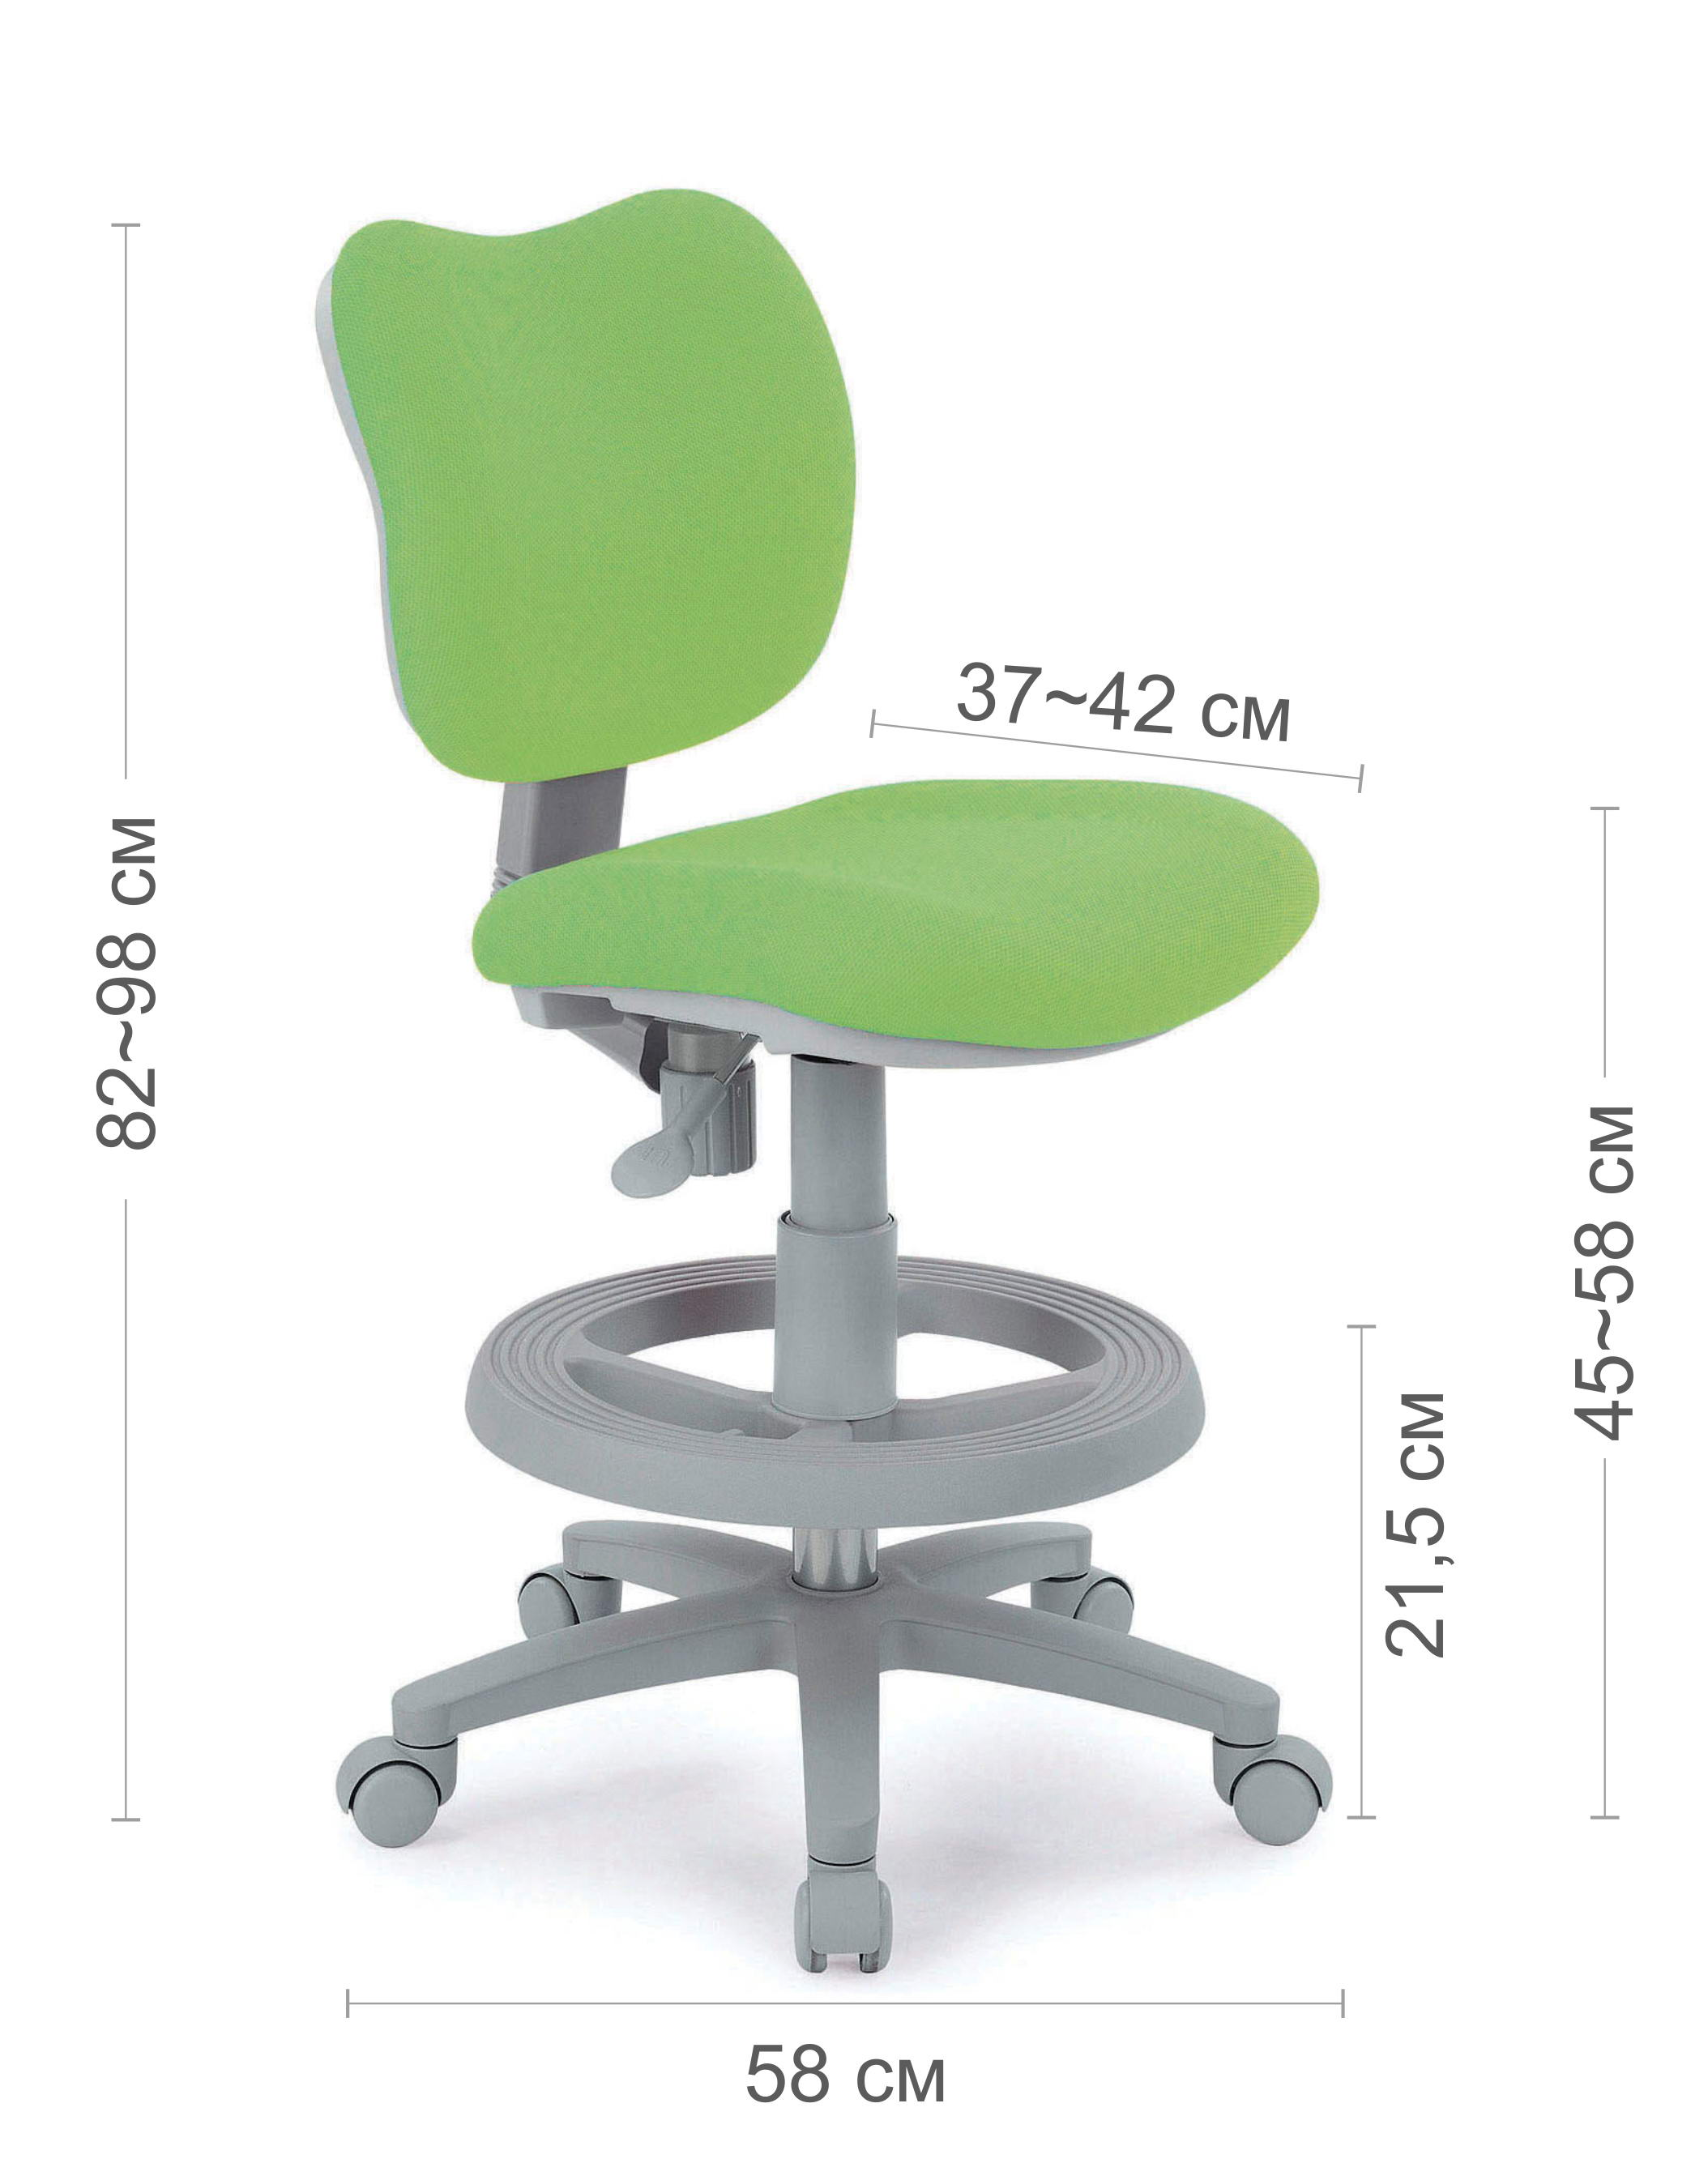 стол tct nanotec м6+xs с креслом kids chair TCT Nanotec М6+XS+Kids Chair